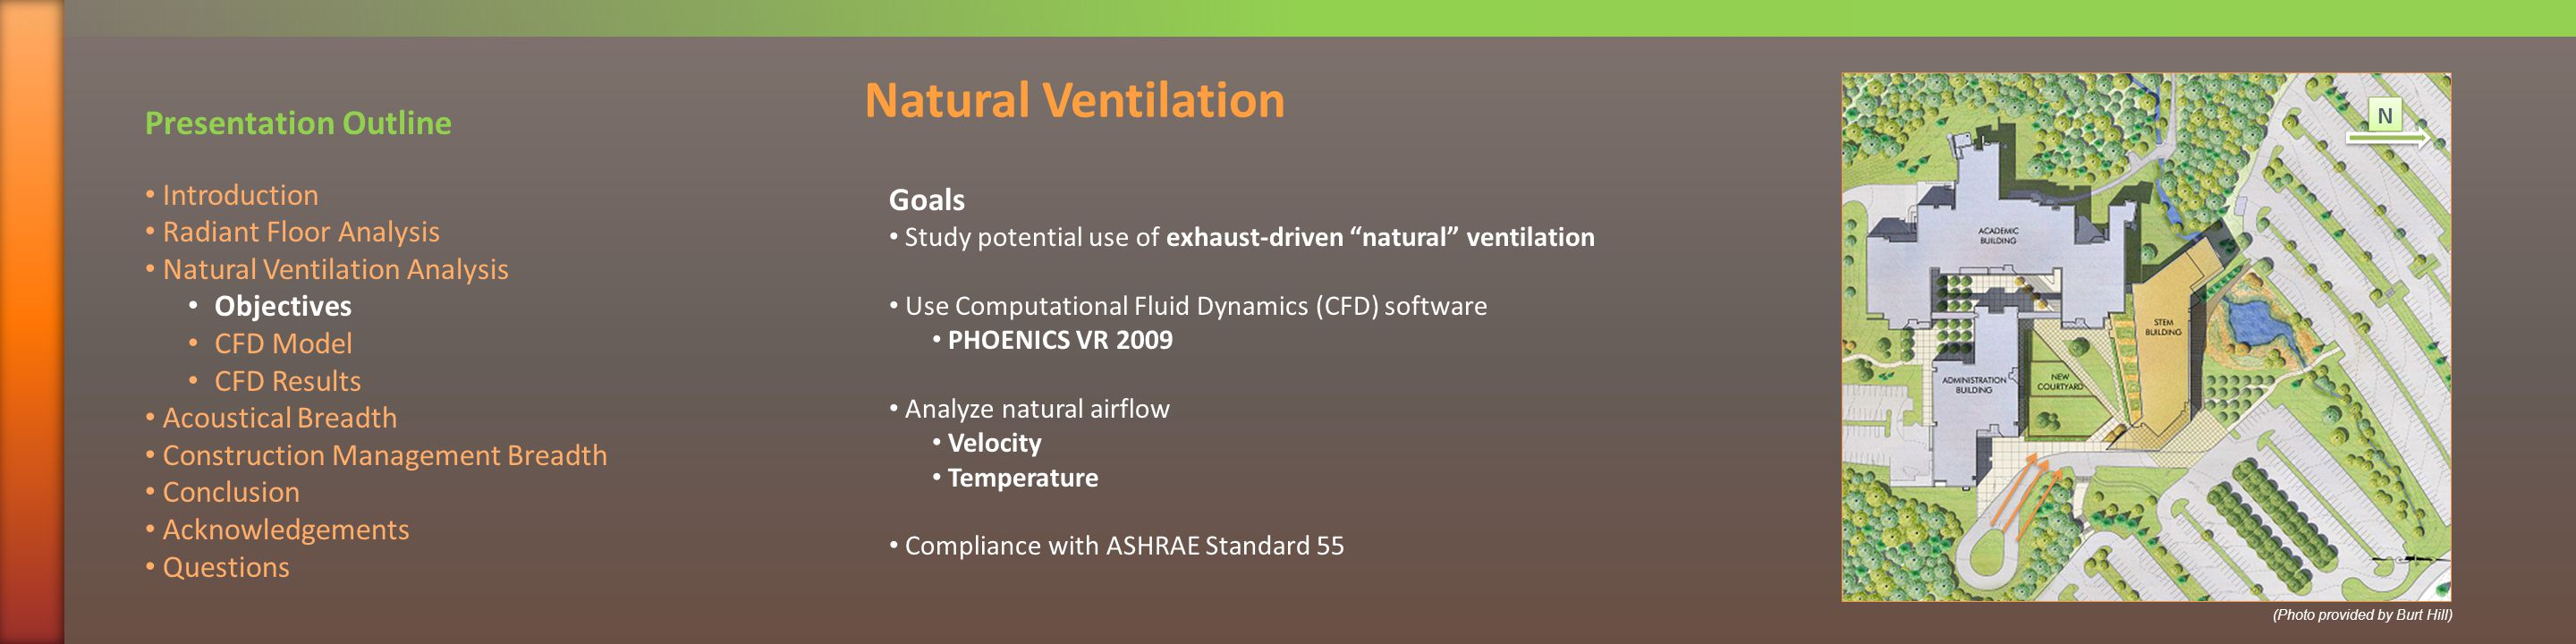 Goals Study potential use of exhaust-driven natural ventilation Use Computational Fluid Dynamics (CFD) software PHOENICS VR 2009 Analyze natural airflow Velocity Temperature Compliance with ASHRAE Standard 55 Natural Ventilation N N Presentation Outline Introduction Radiant Floor Analysis Natural Ventilation Analysis Objectives CFD Model CFD Results Acoustical Breadth Construction Management Breadth Conclusion Acknowledgements Questions (Photo provided by Burt Hill)